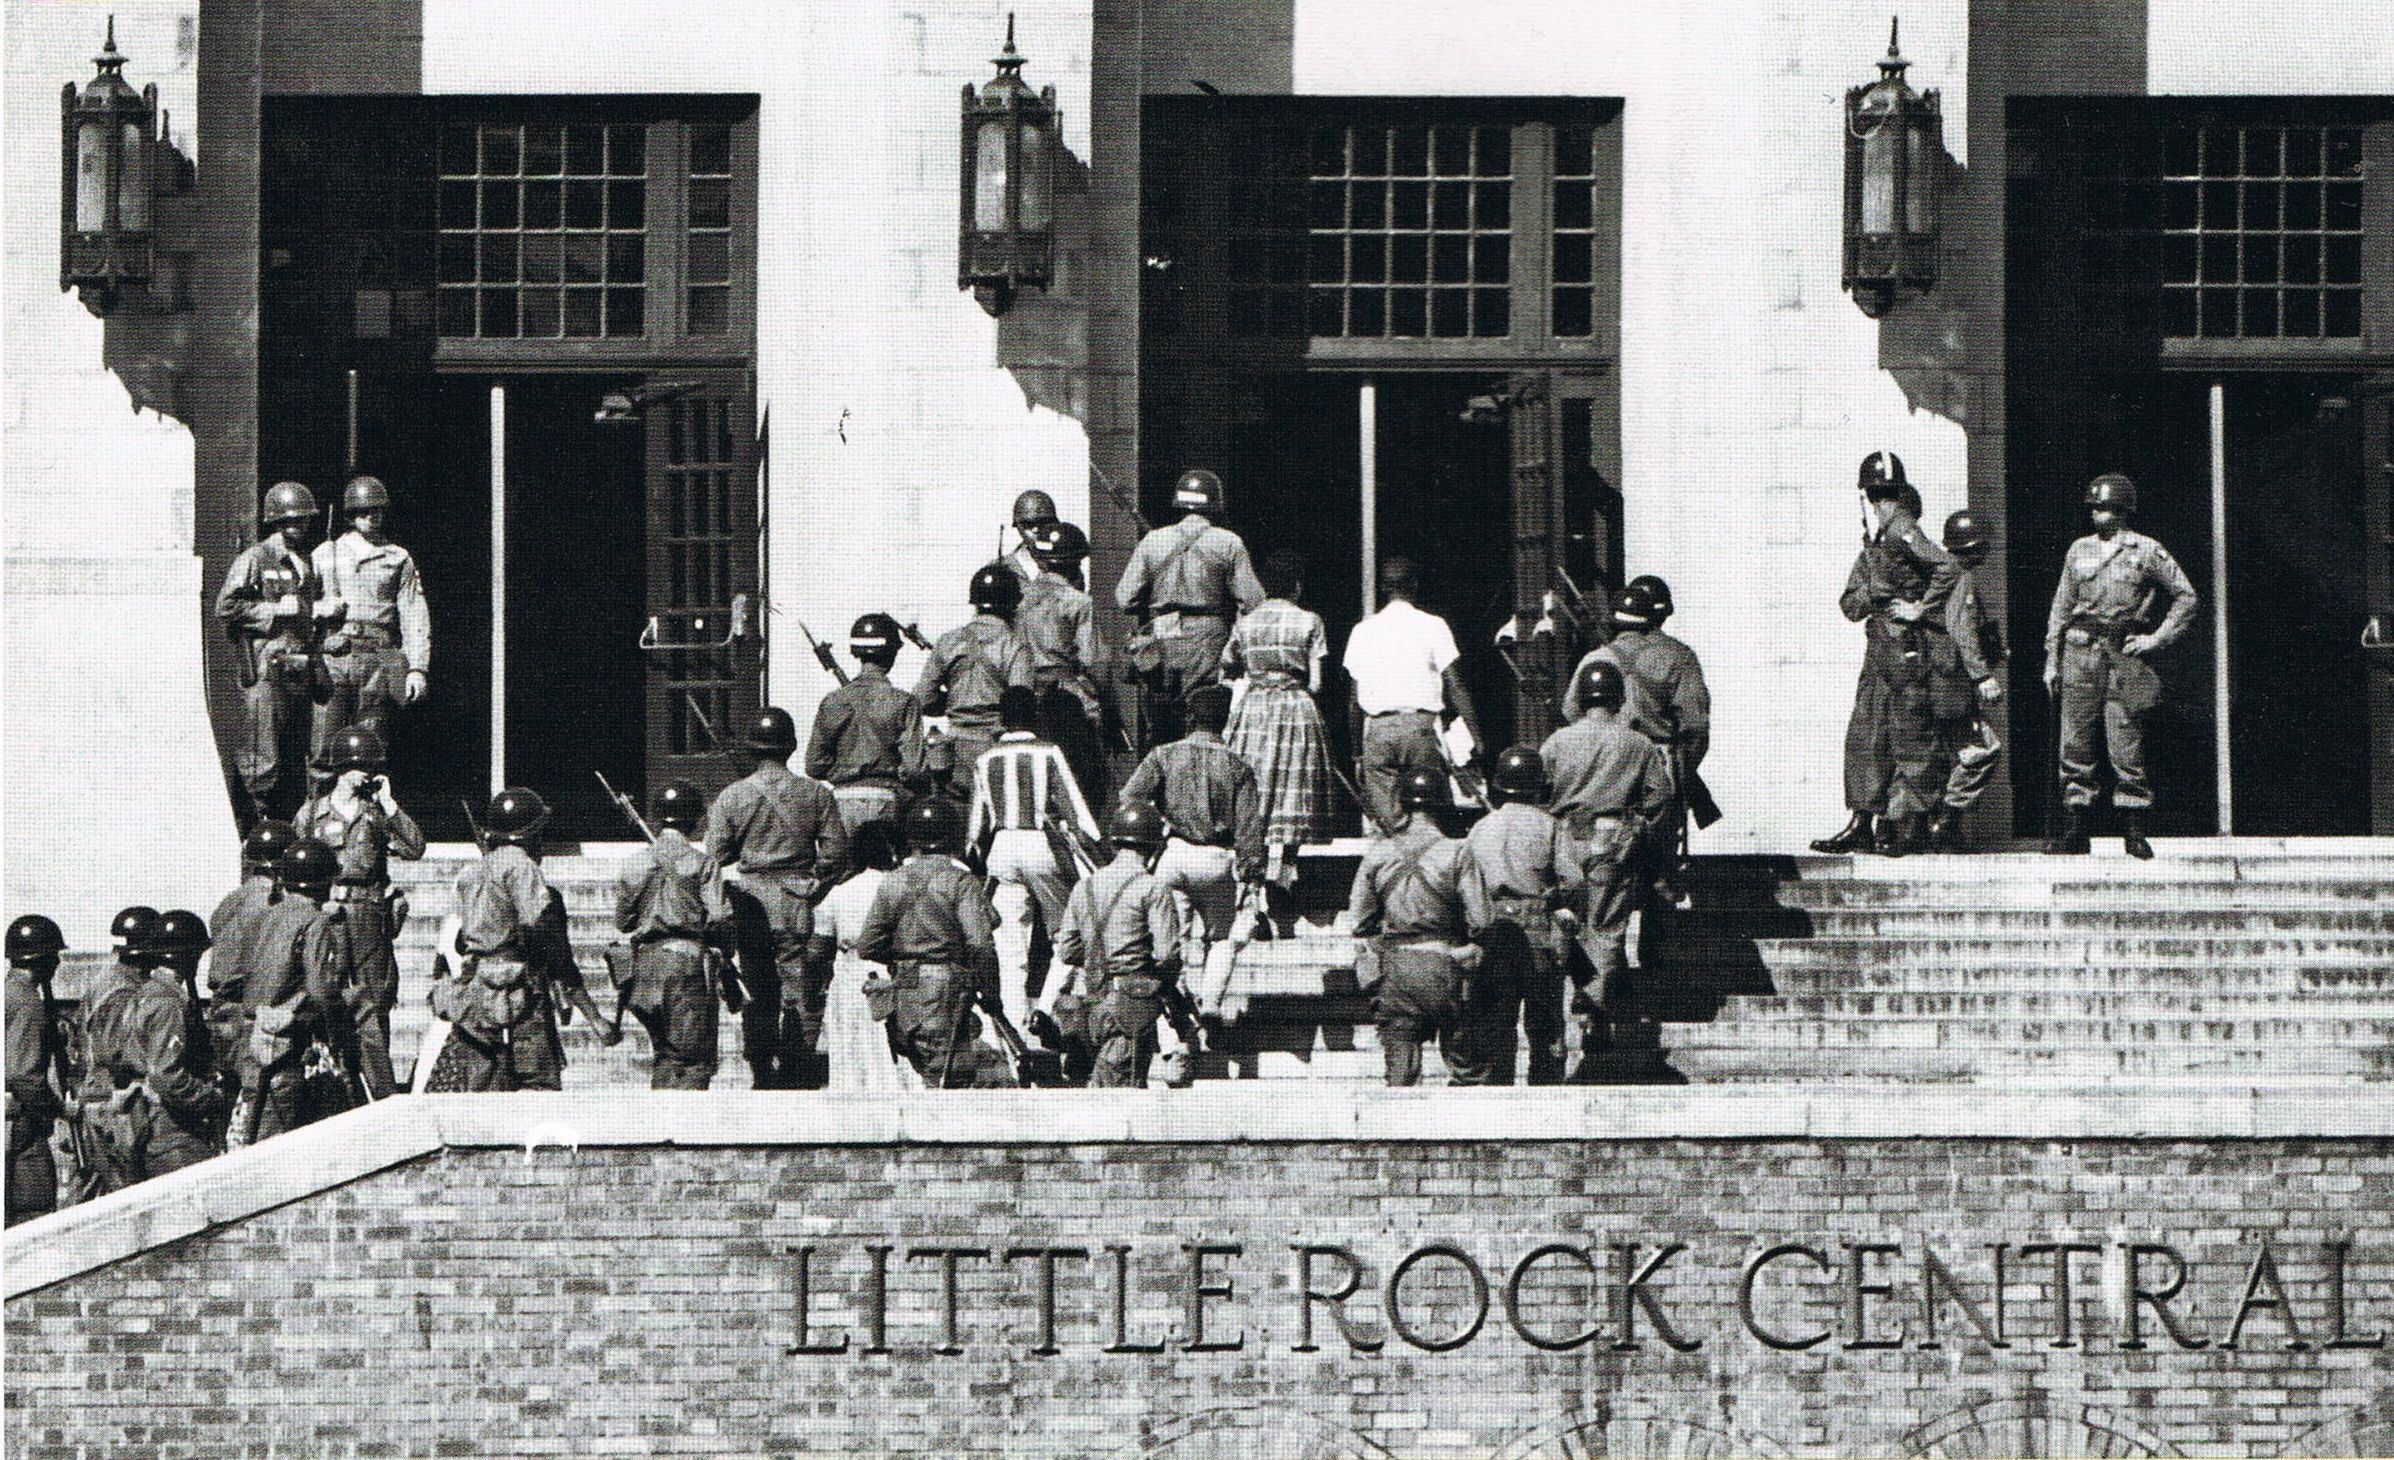 essay on the little rock nine Sixty years ago, a group of nine students walked into a school and changed  america i had a right to be at central, one of them tells time.